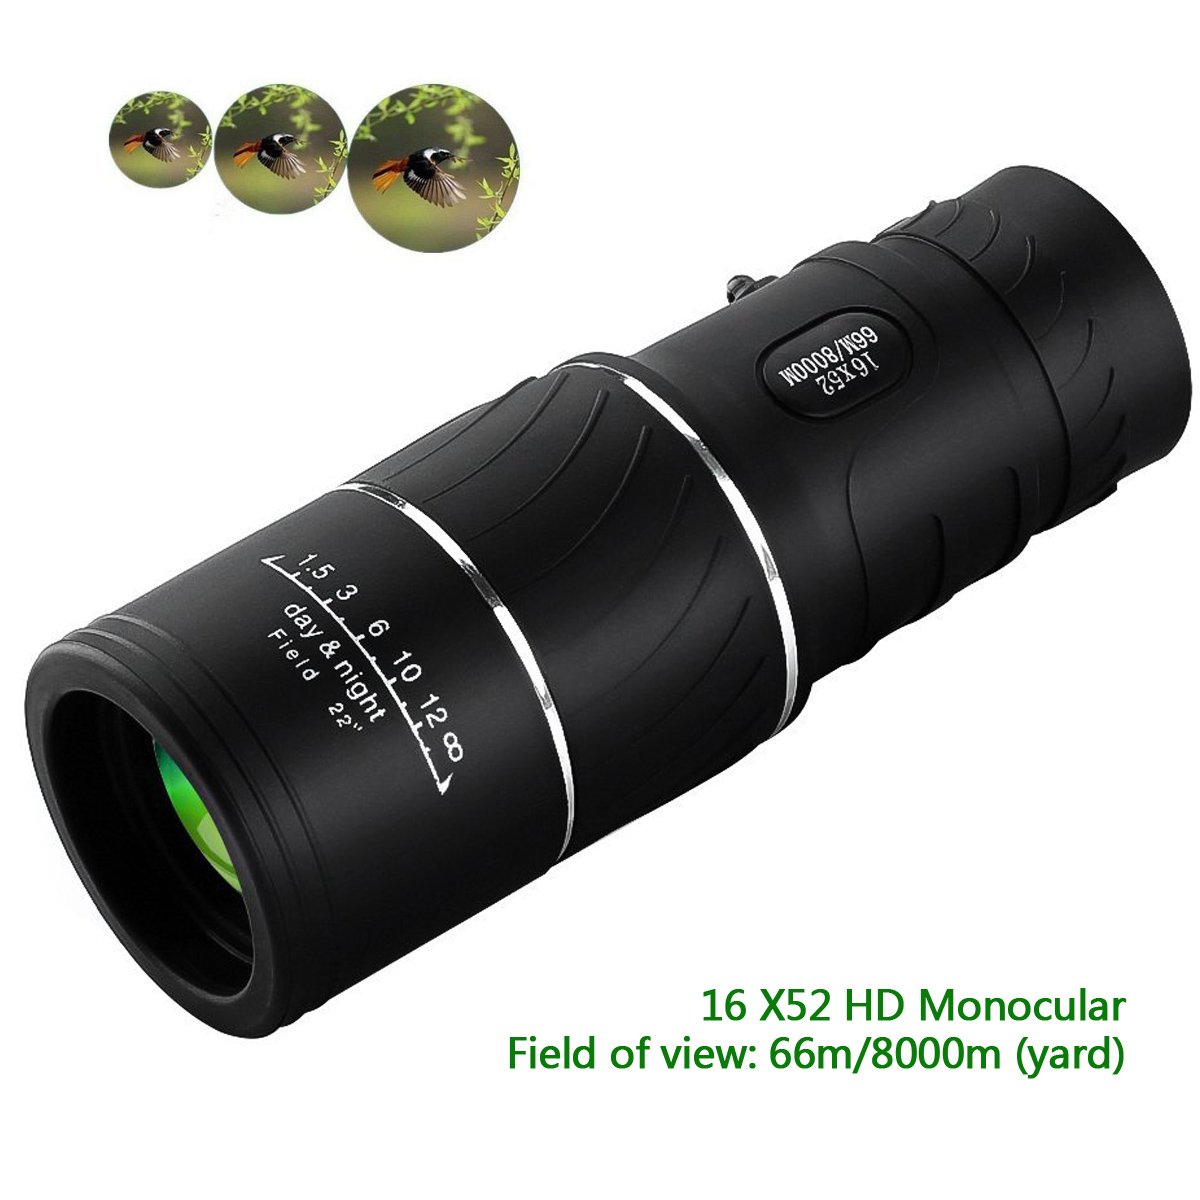 PESTORY Day & Night Vision 16x52 HD Monocular Dual Focus Optics Zoom Telescope 66m/8000m for Birds Watching/ Hunting/ Camping/ Hiking